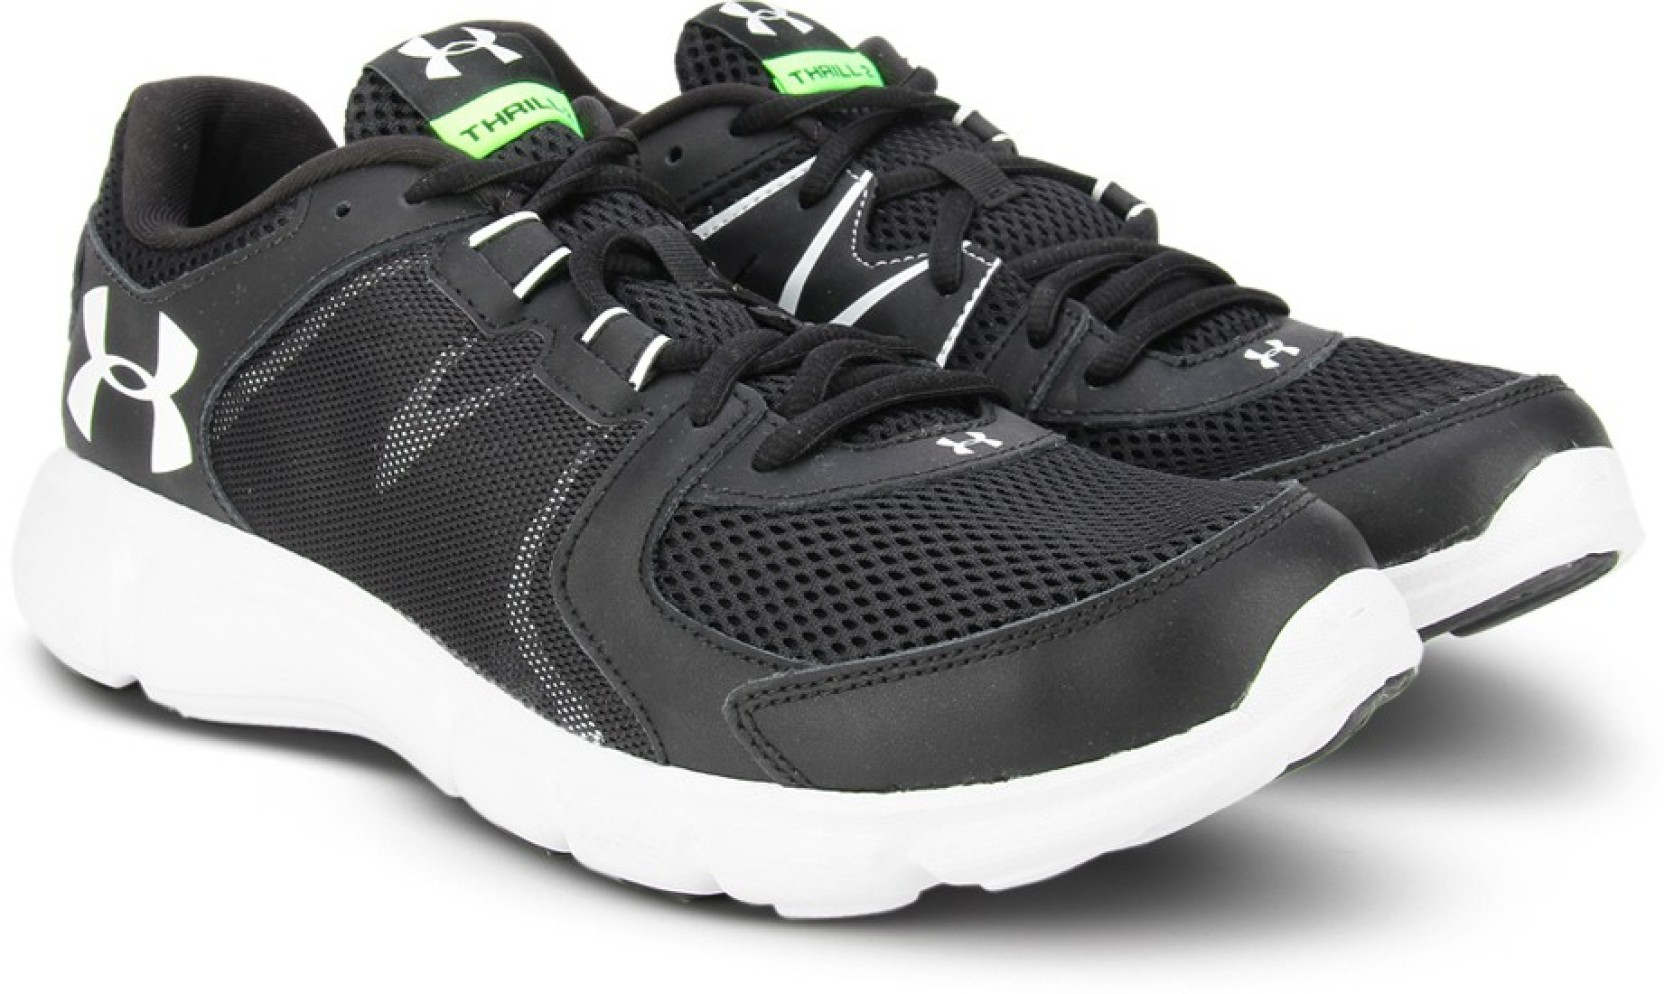 new arrival 45871 d9655 Under Armour UA Thrill 2 Running Shoes For Men